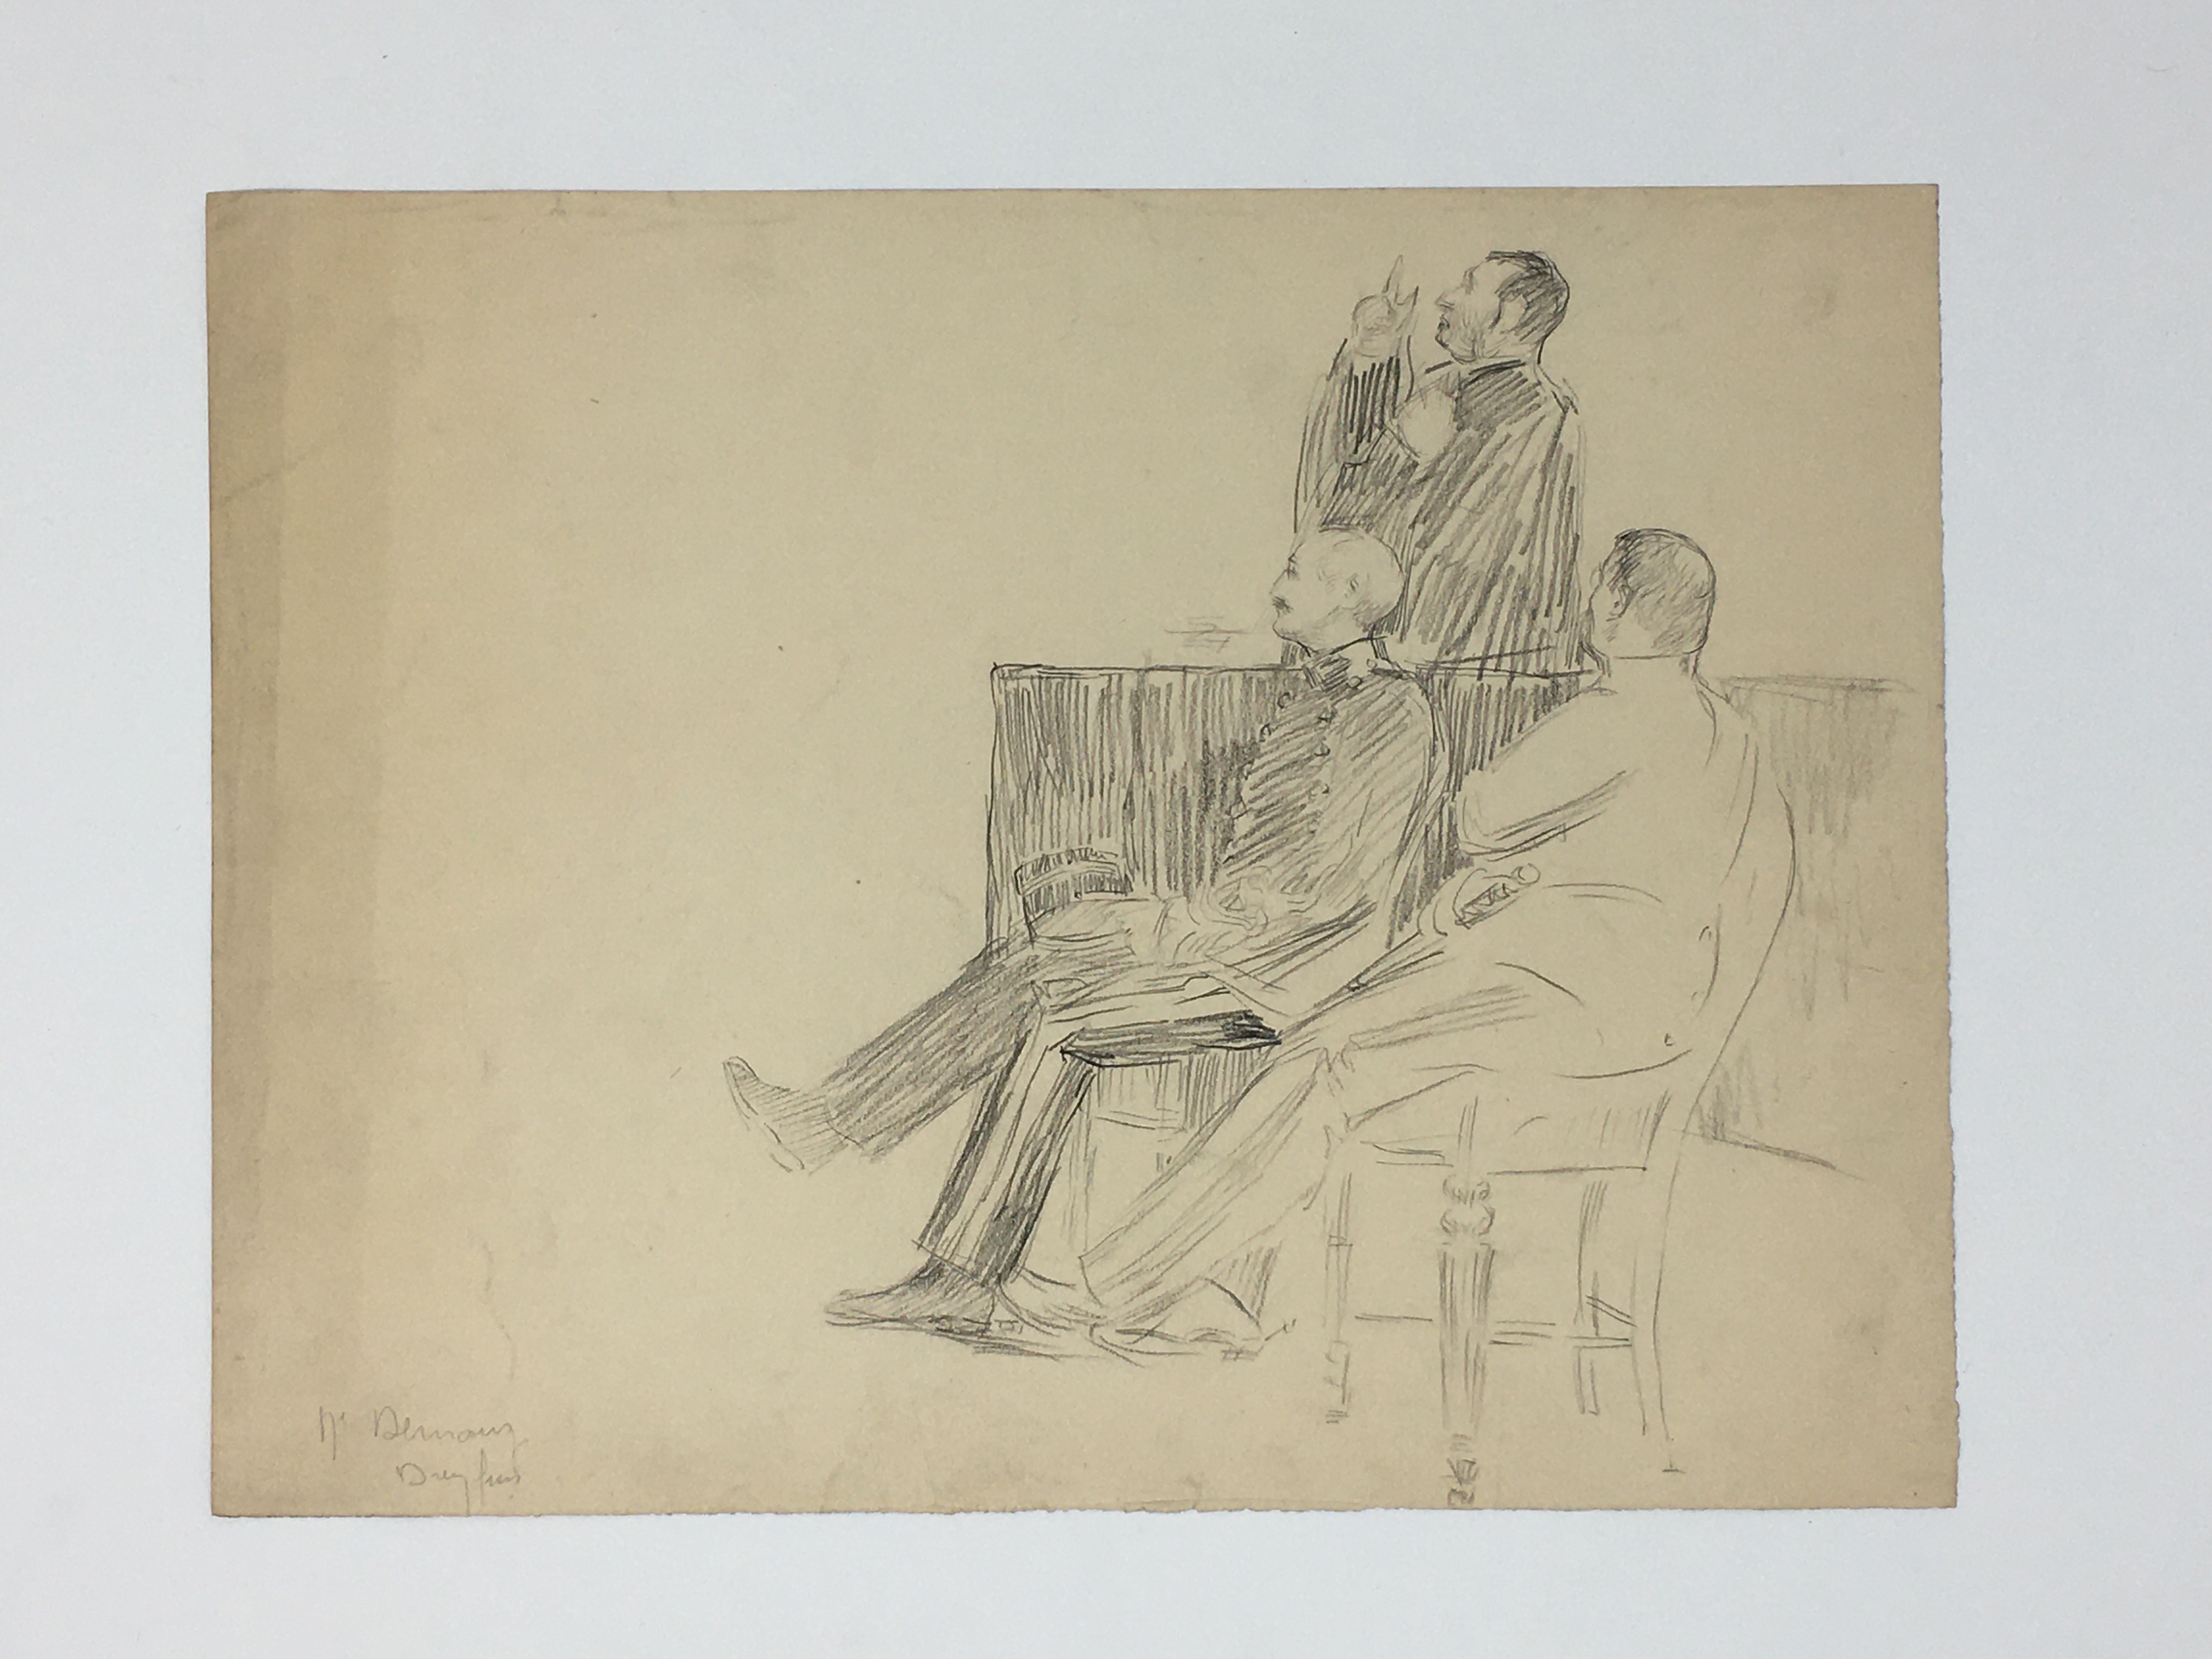 J'Accuse Newspaper, Emile Zola Quote, Signed Dreyfus Portrait, Rare Trial Drawings & Schwartzkoppen - Image 24 of 74